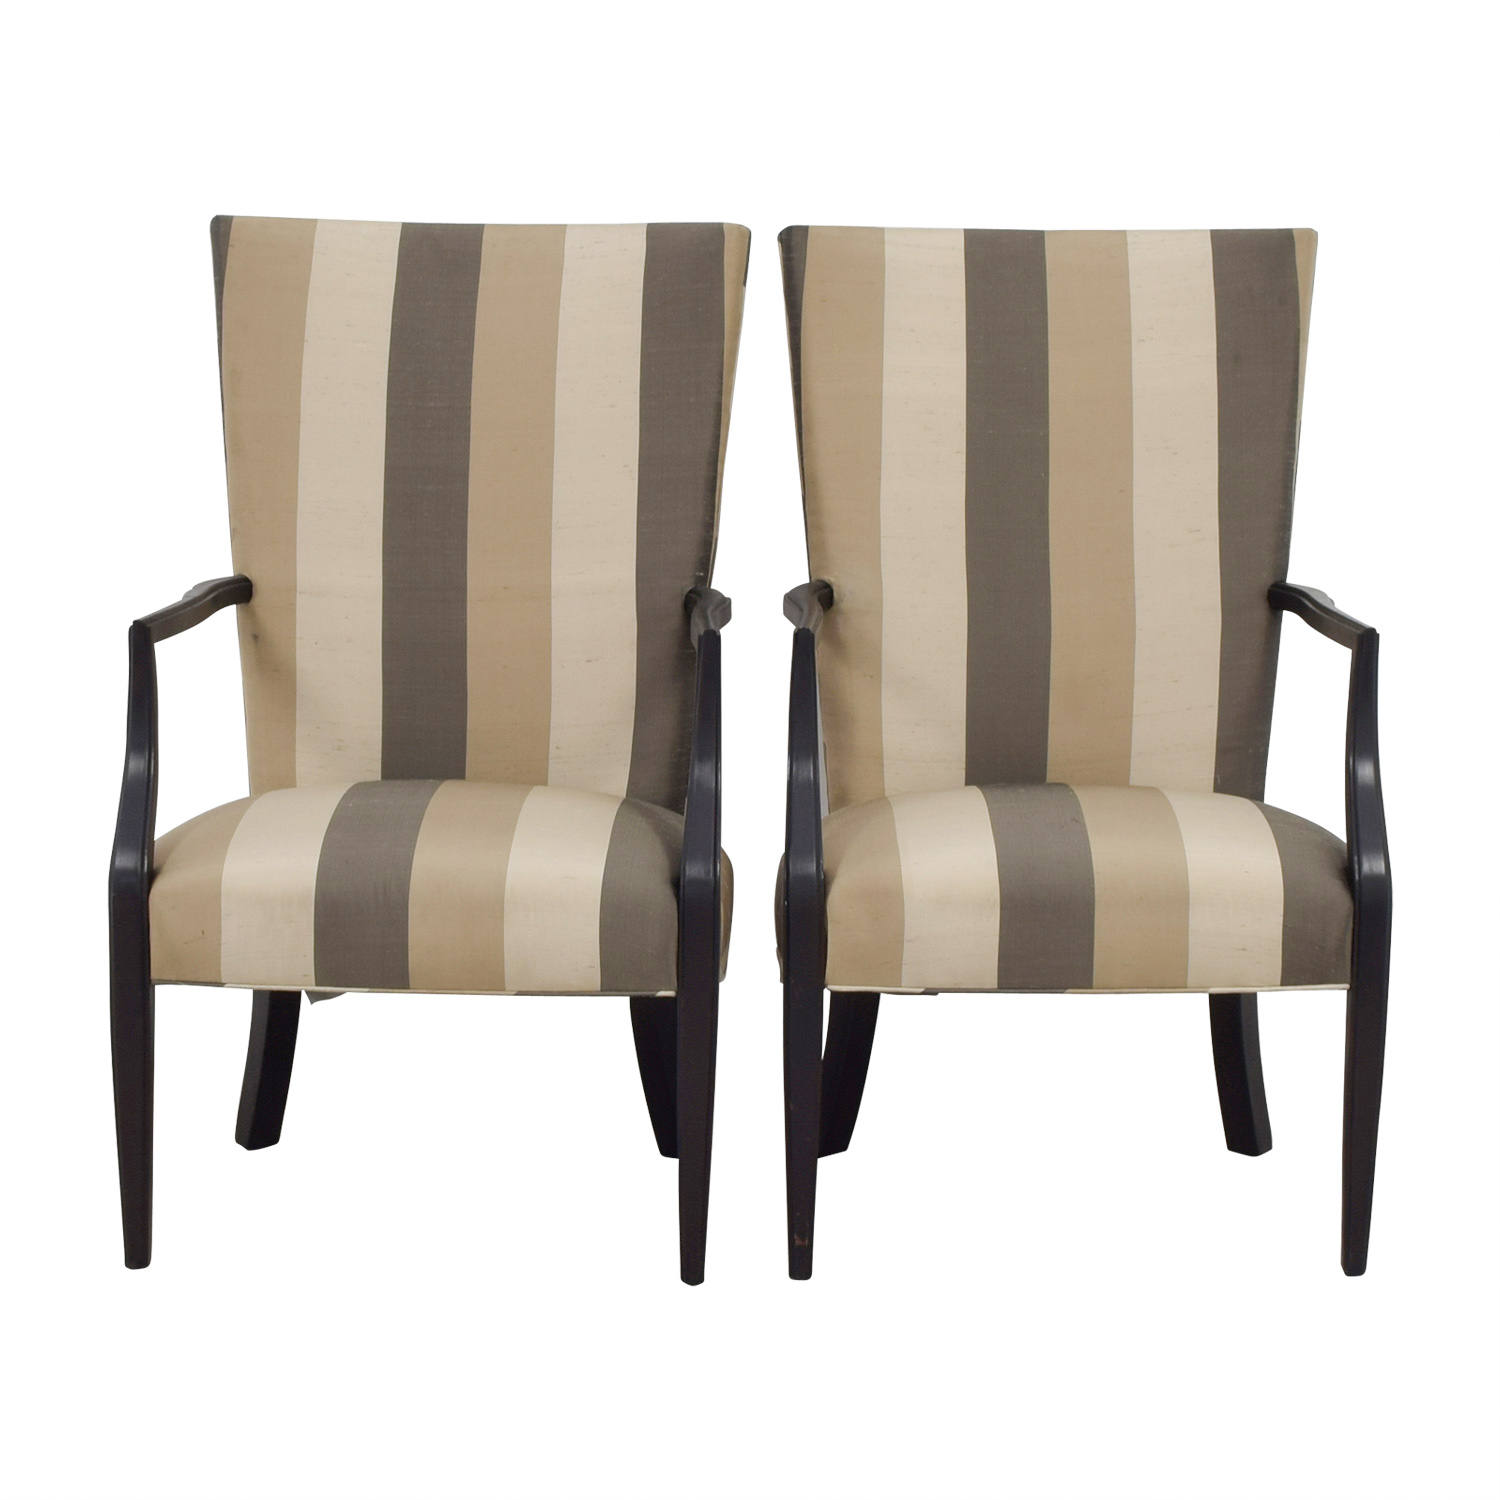 Shop Hickory Chair Furniture Co. Vintage Neutral Stripe Chairs Hickory Chair  Furniture Co.